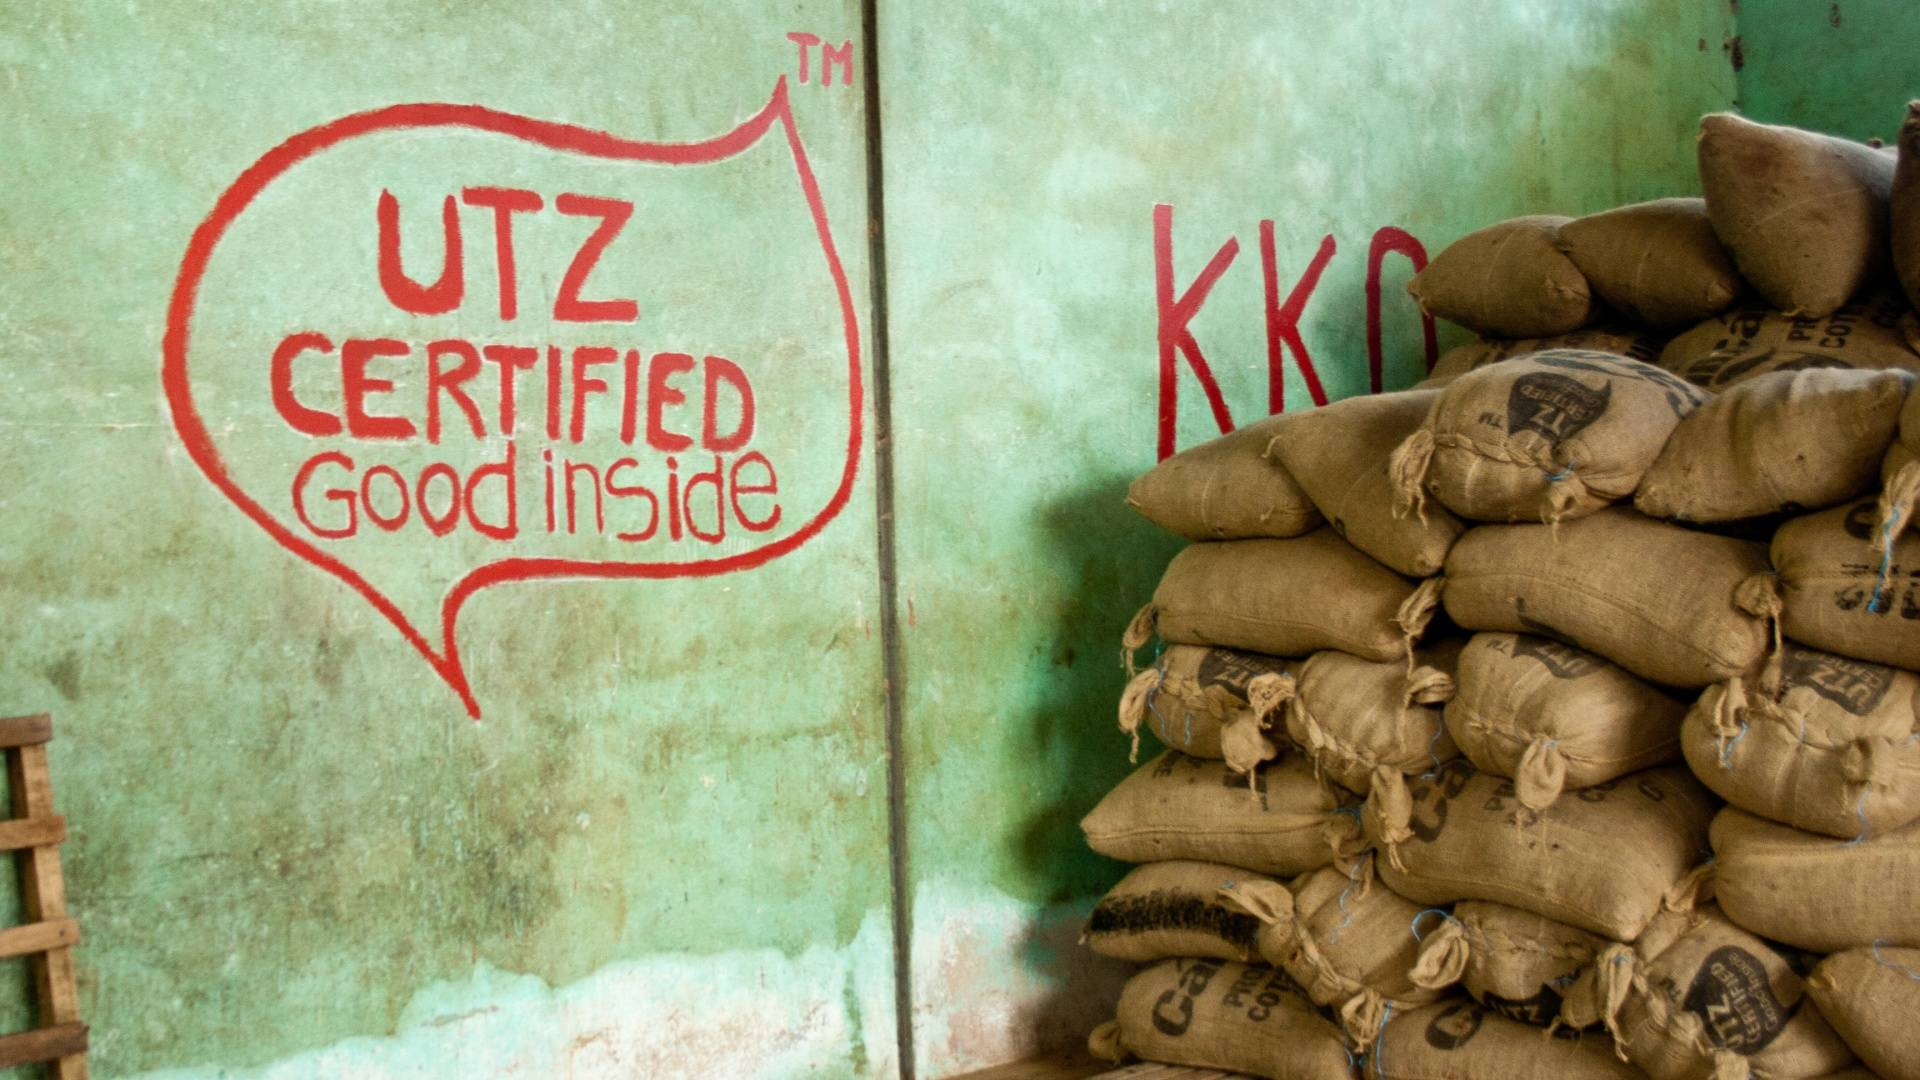 UTZ Certified Cocoa sustainable farming and harvest